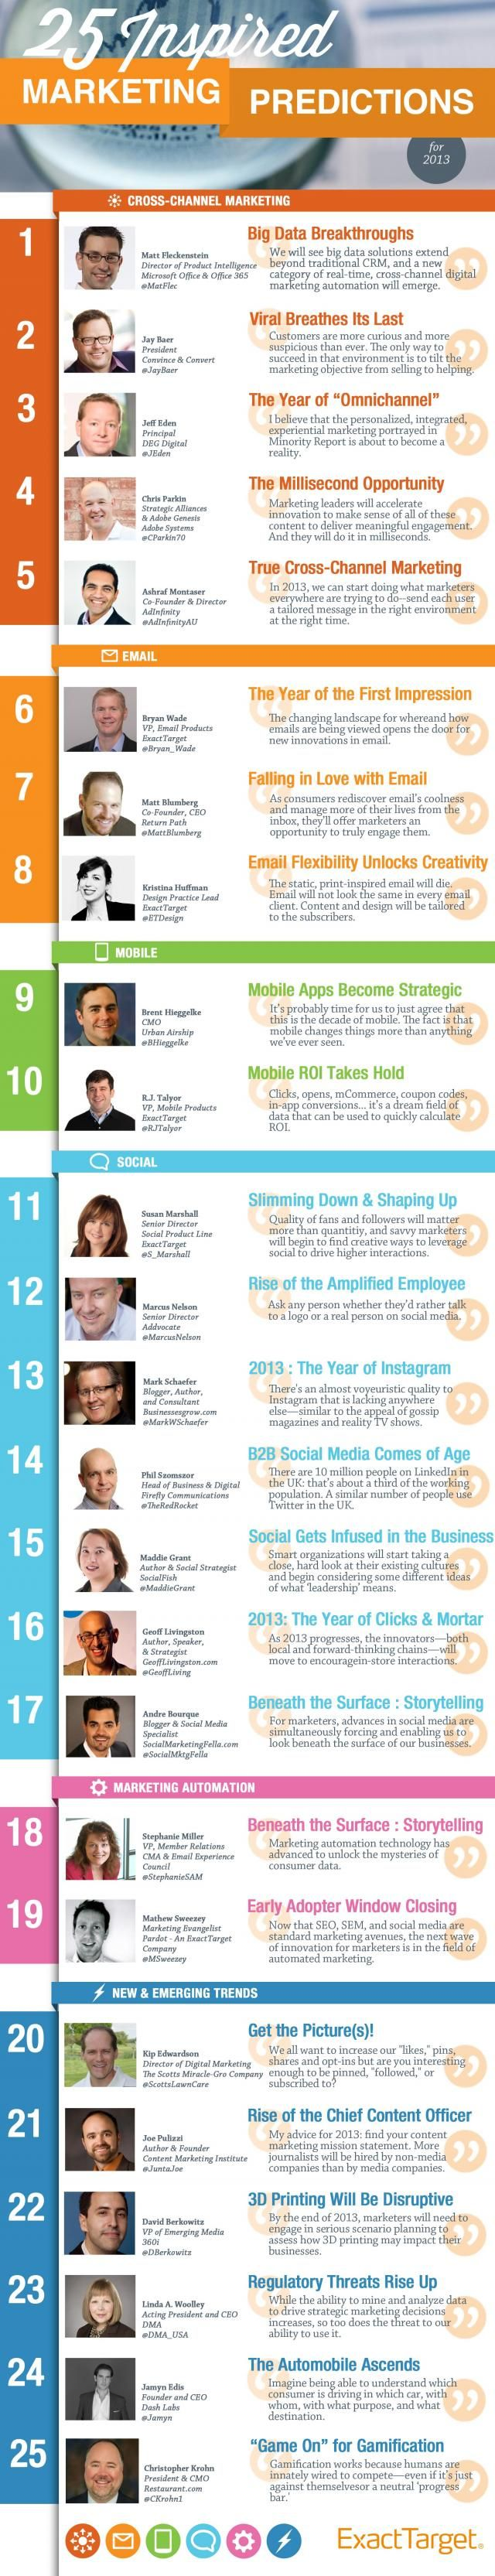 25 Inspired Marketing Predictions [INFOGRAPHIC] #ExactTarget #Marketing #Email #Mobile #Social #Predictions #Infographic